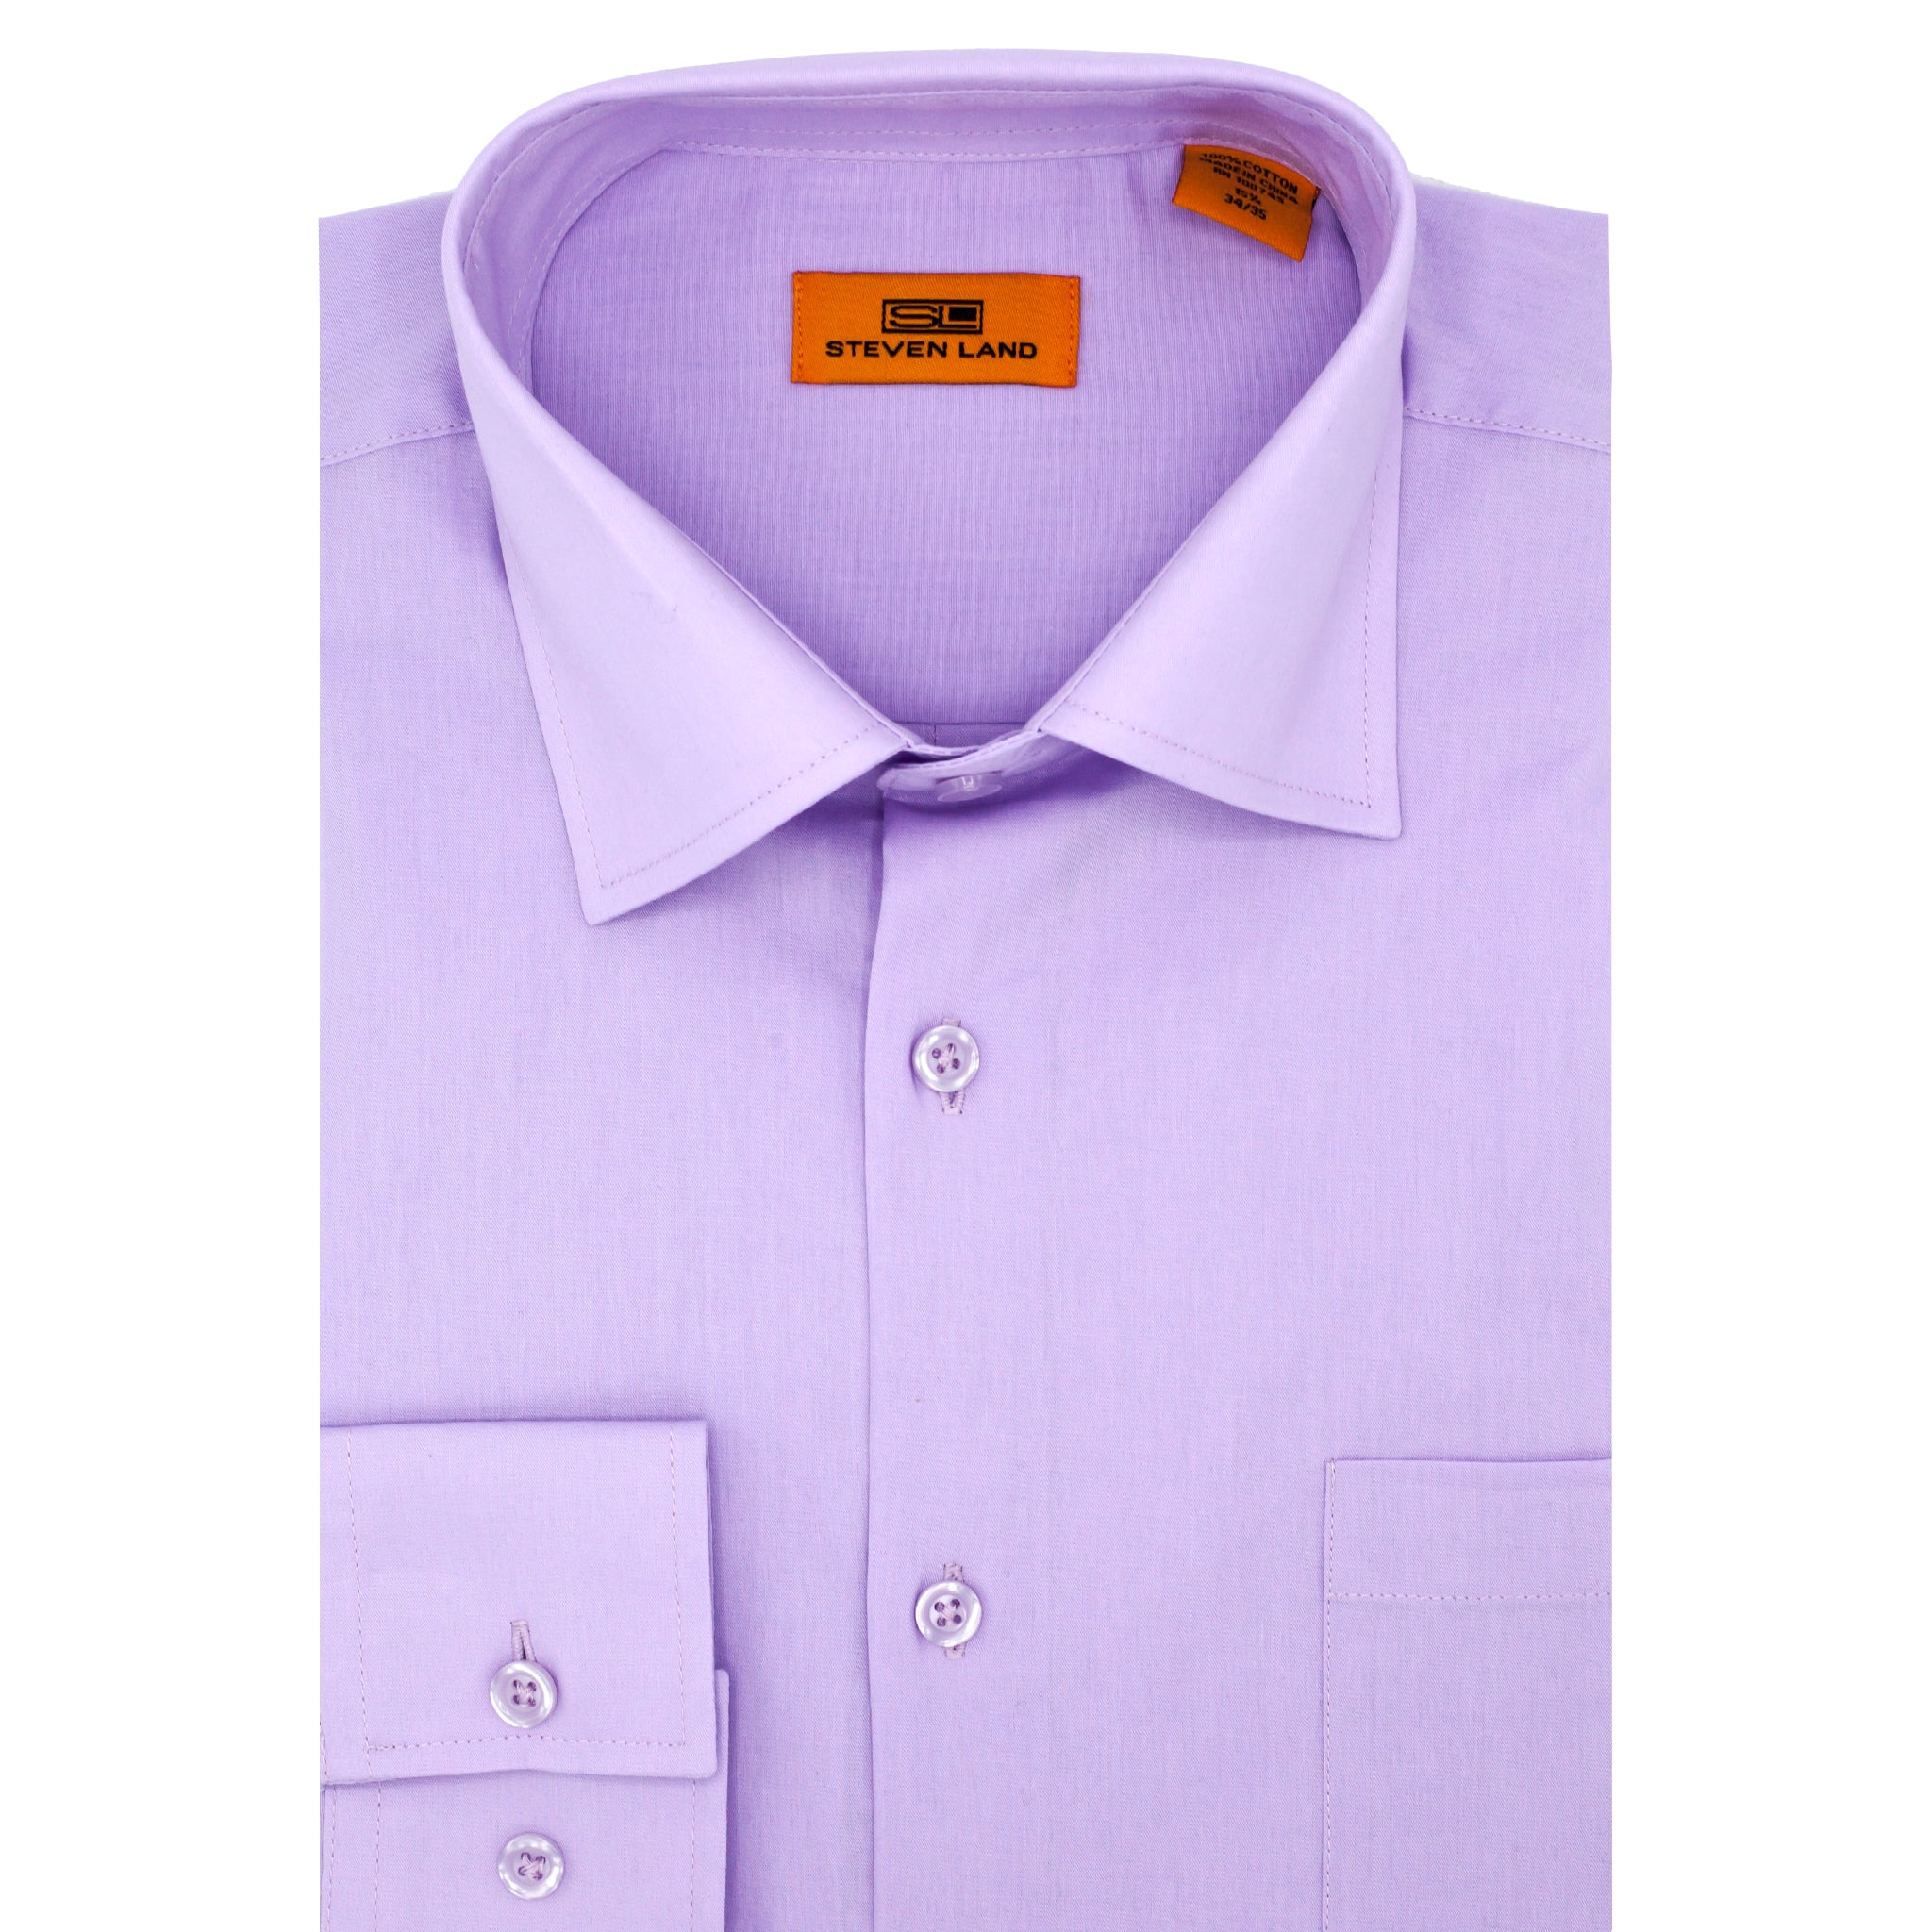 STEVENLAND DRESS SHIRT